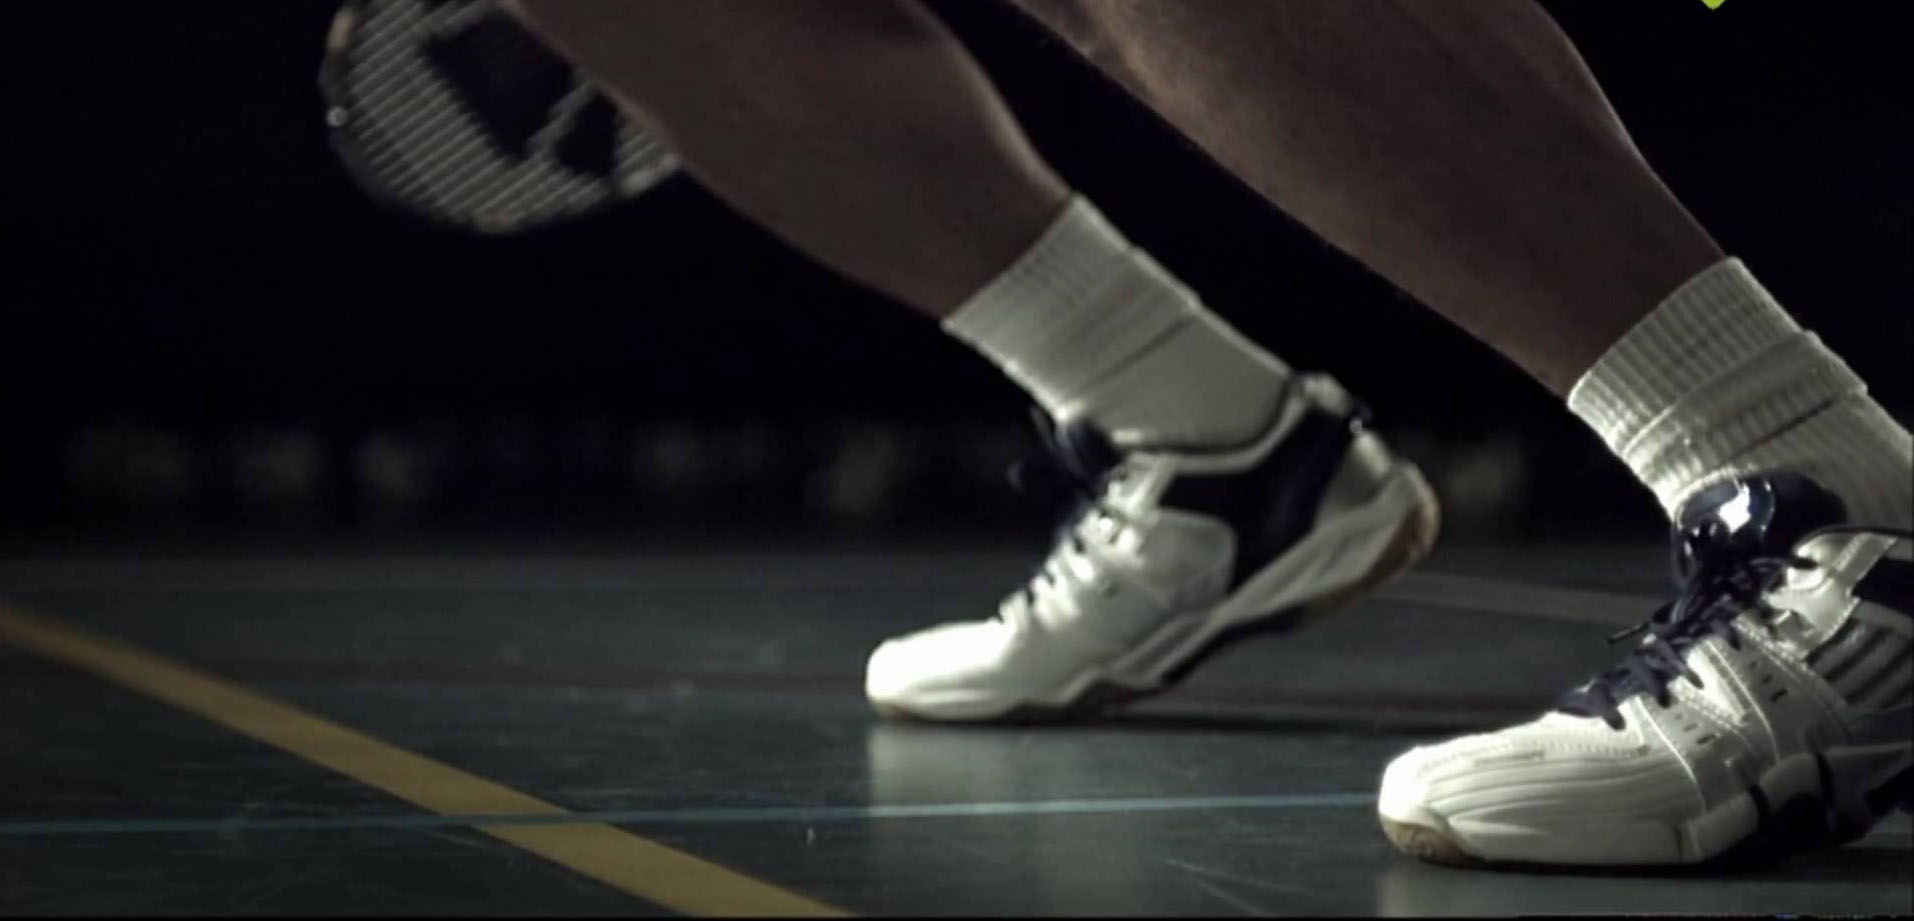 badminton footwork wallpaper